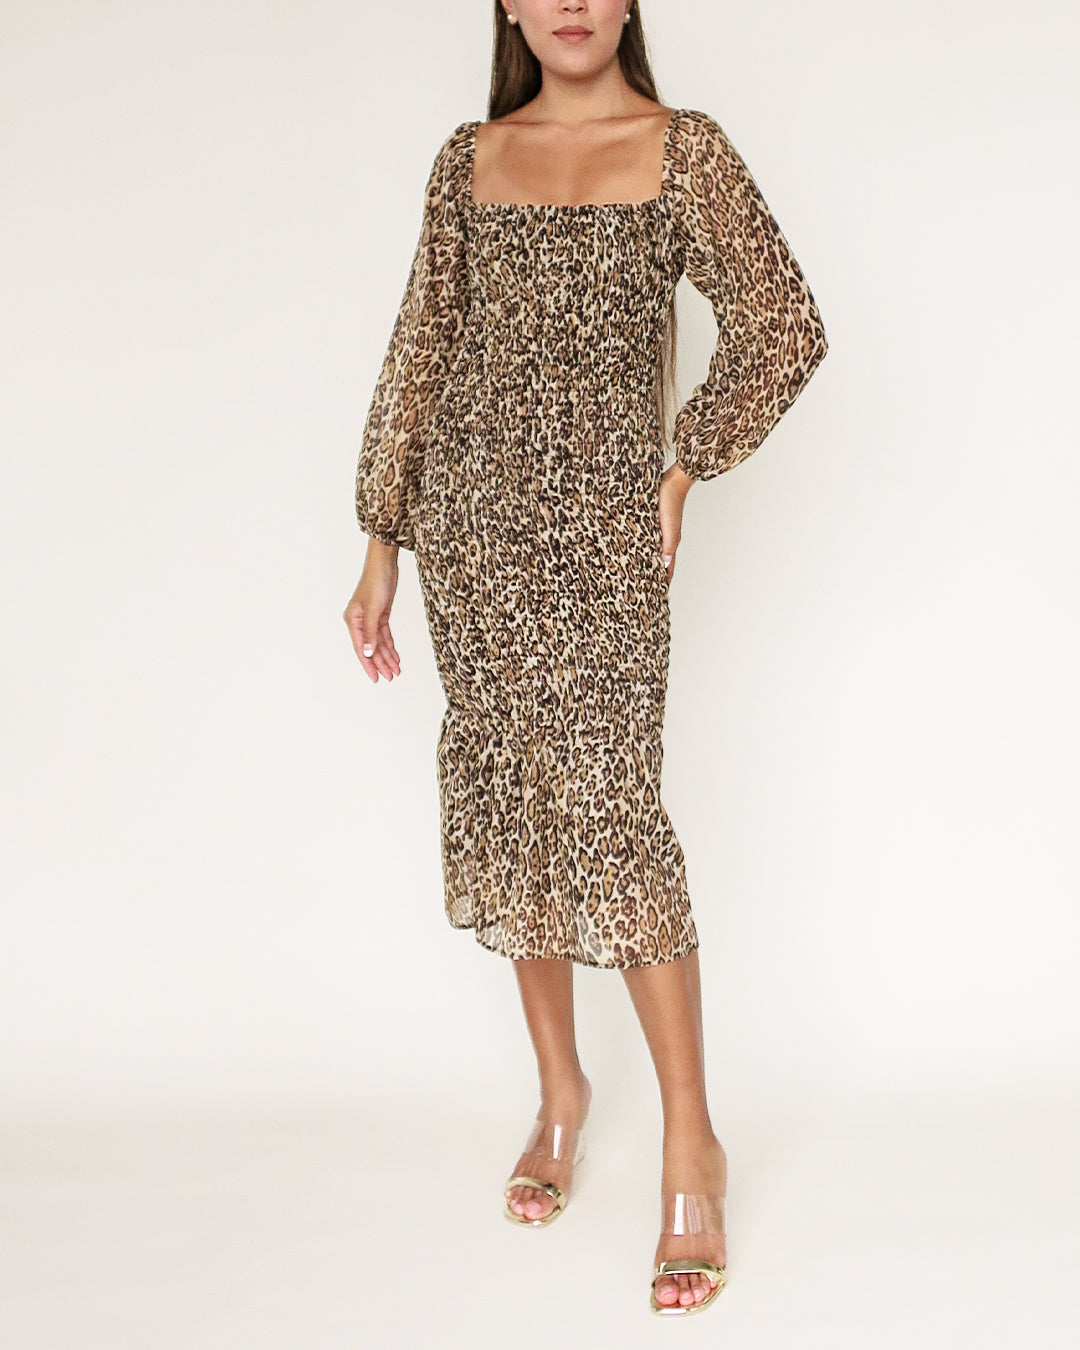 The Ariel Dress in Leopard Print